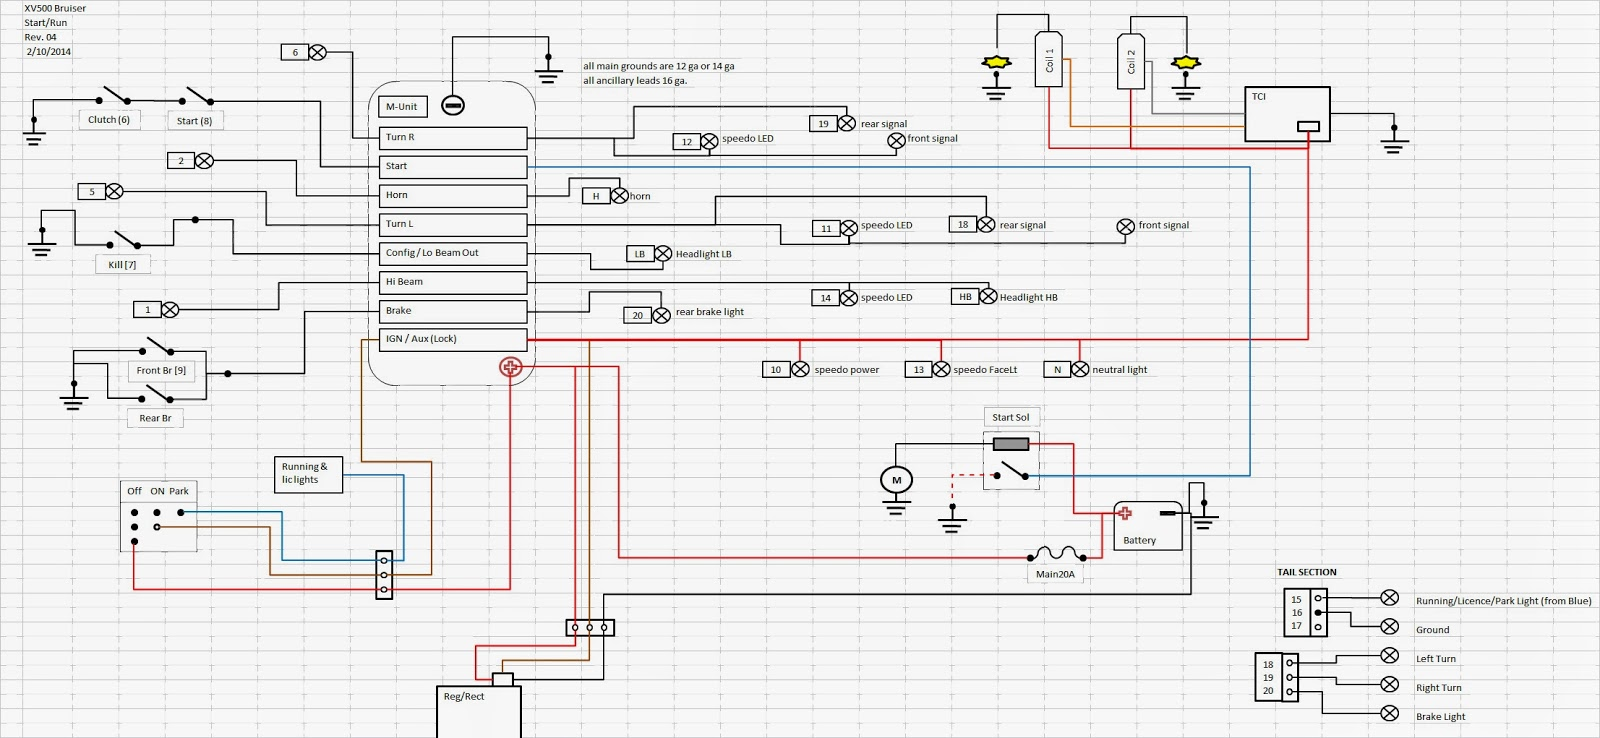 Wiring+Schematic+R04 viragotechforum com \u2022 view topic yet another cafe project part 1 1982 yamaha virago 920 wiring diagram at panicattacktreatment.co